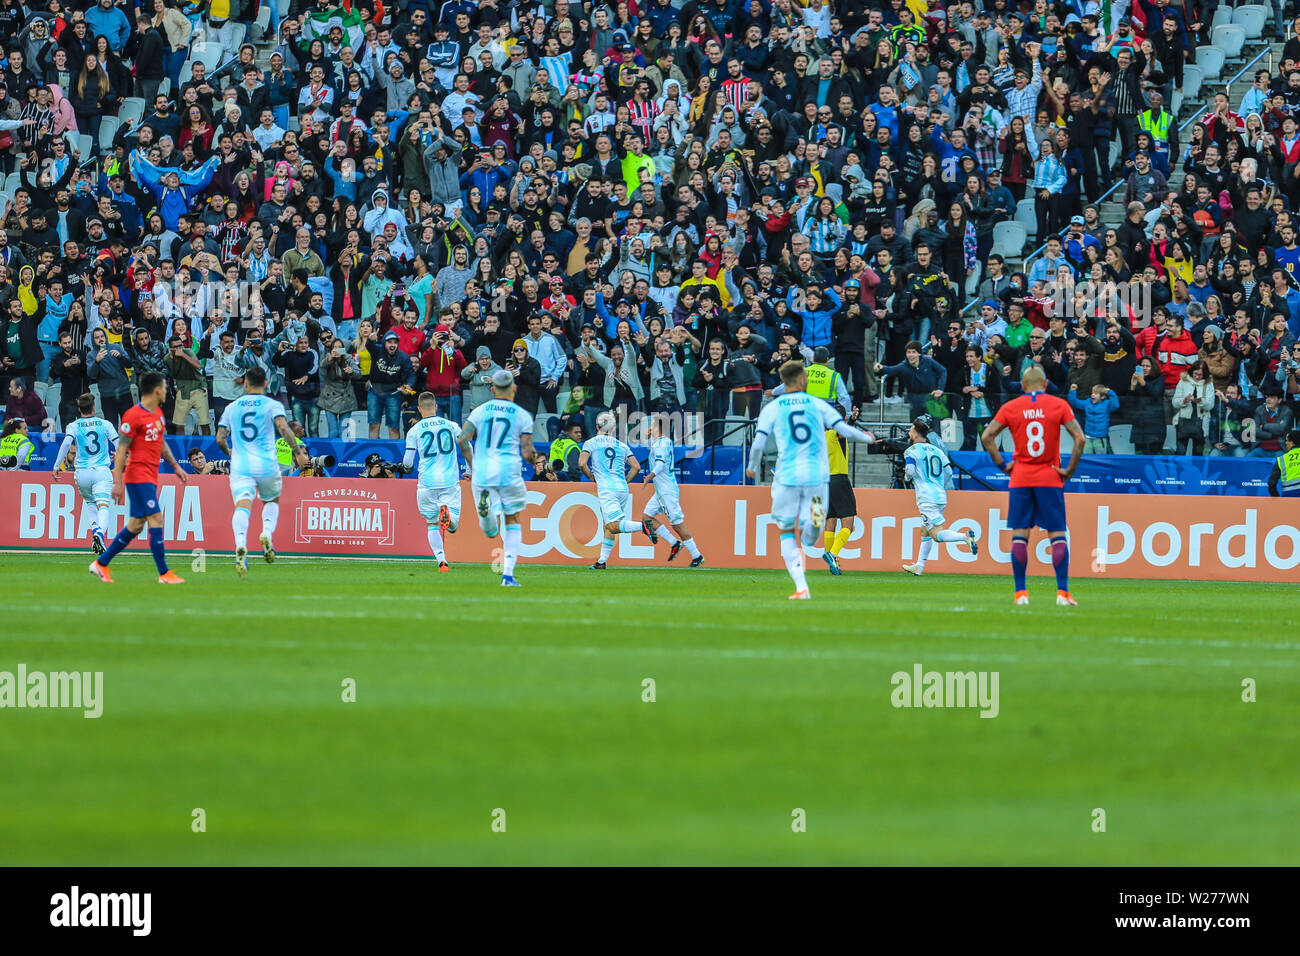 Brazil. 6th July, 2019. Dybala celebrate goal in the Game of the match between Argentina X Chile valid for third place dispute of Copa America 2019, in the Arena Corinthians, in São Paulo, this Saturday (06). Photo: Geraldo Bubniak Credit: Geraldo Bubniak/ZUMA Wire/Alamy Live News - Stock Image